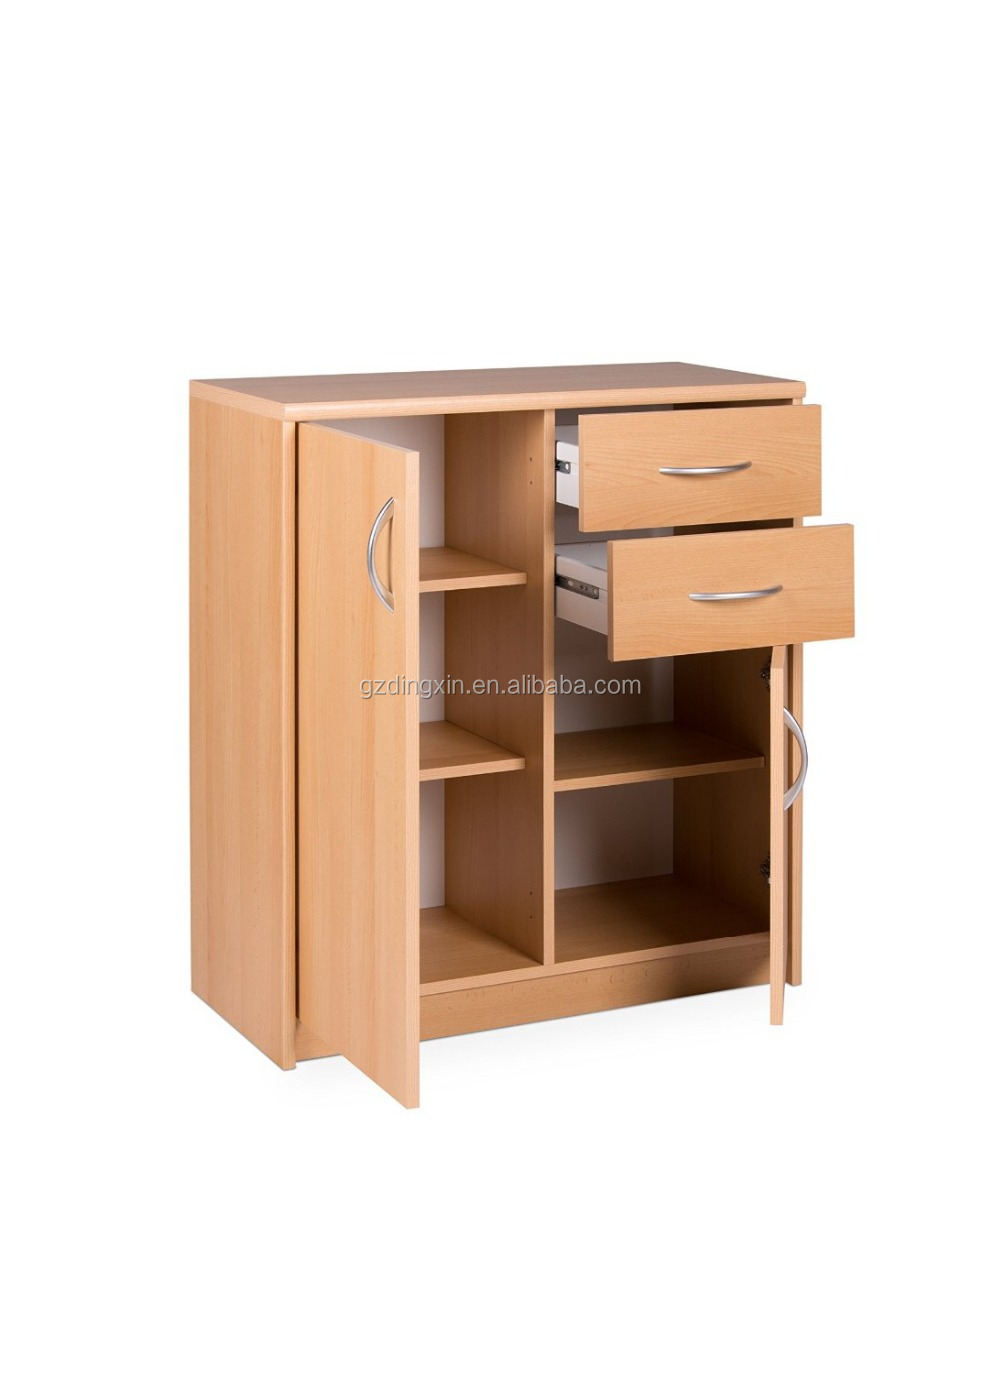 Lobby High Quality Living Room Wood Cabinet With Drawers Buy Living Room High Gloss Cabinets